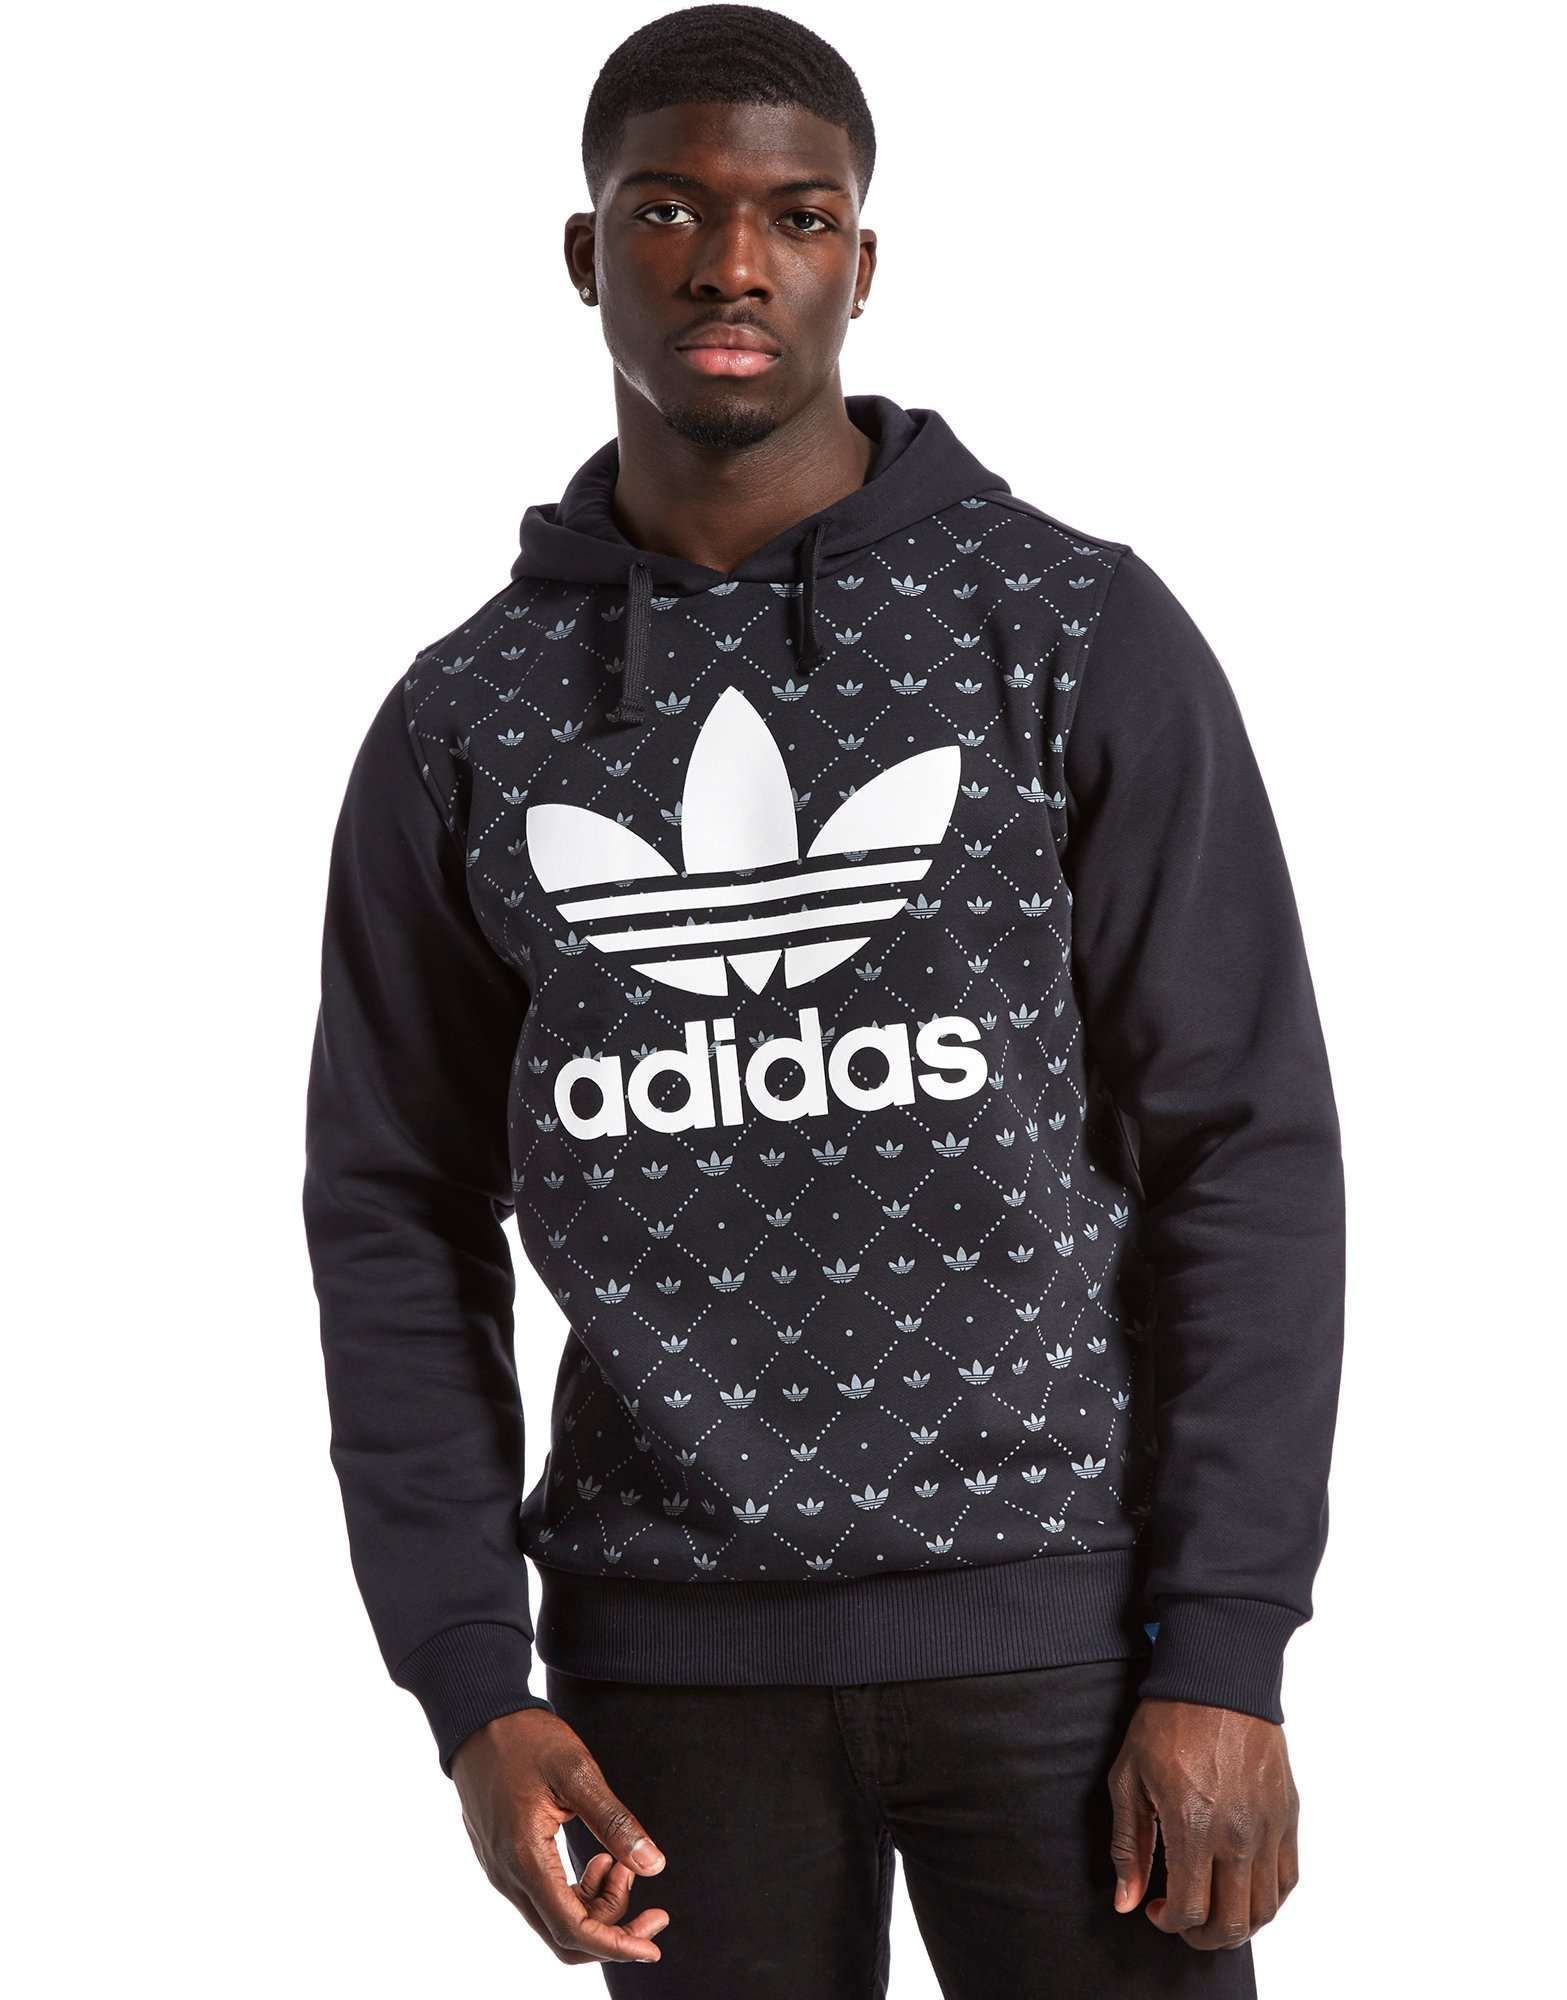 24 Best Of Palace X Adidas Hoodie Inspiring Ideas palace x